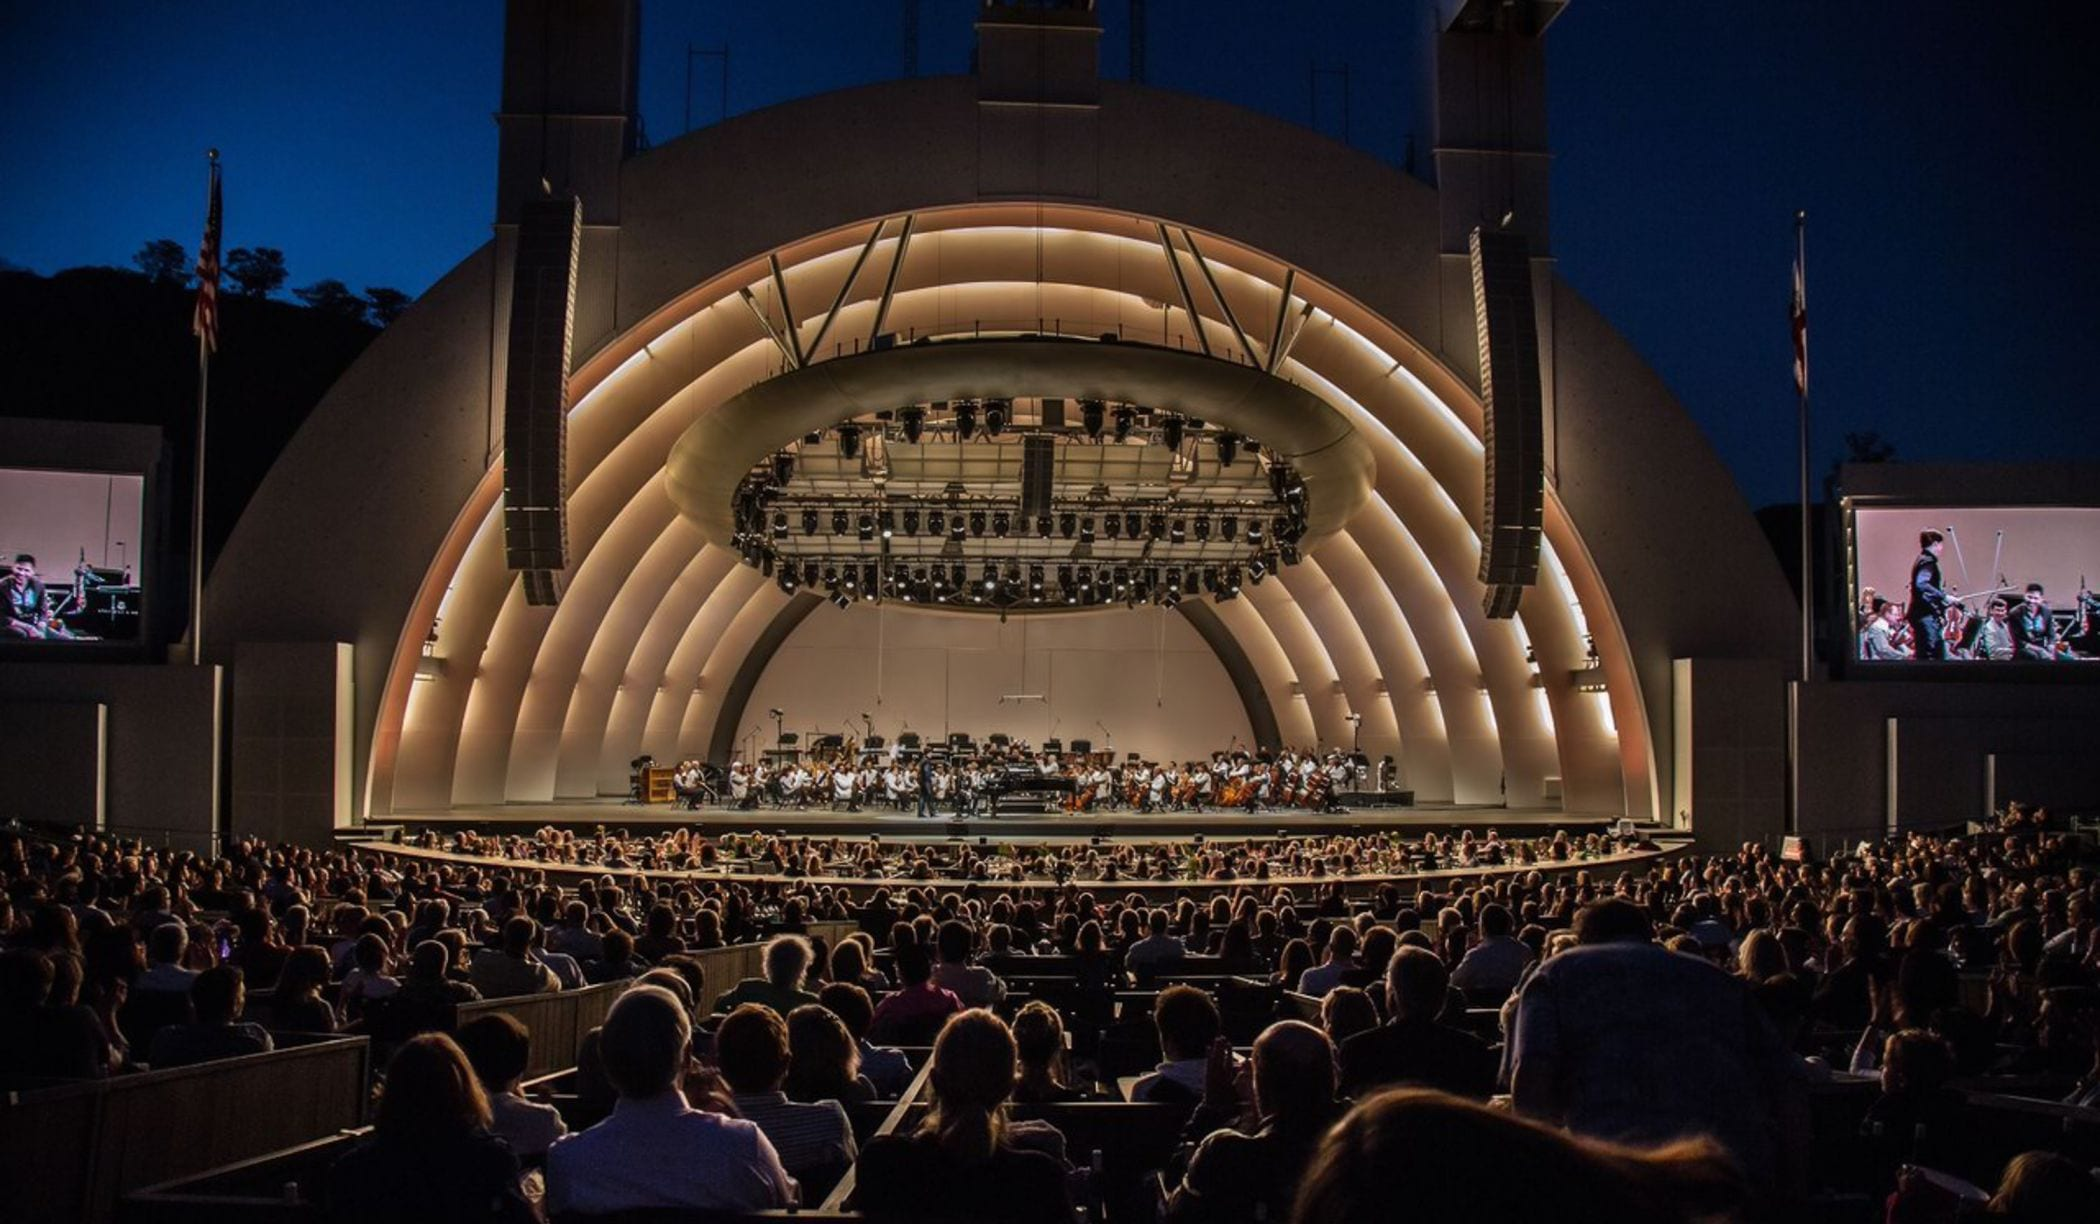 FRANKIE GOES TO HOLLYWOOD BOWL